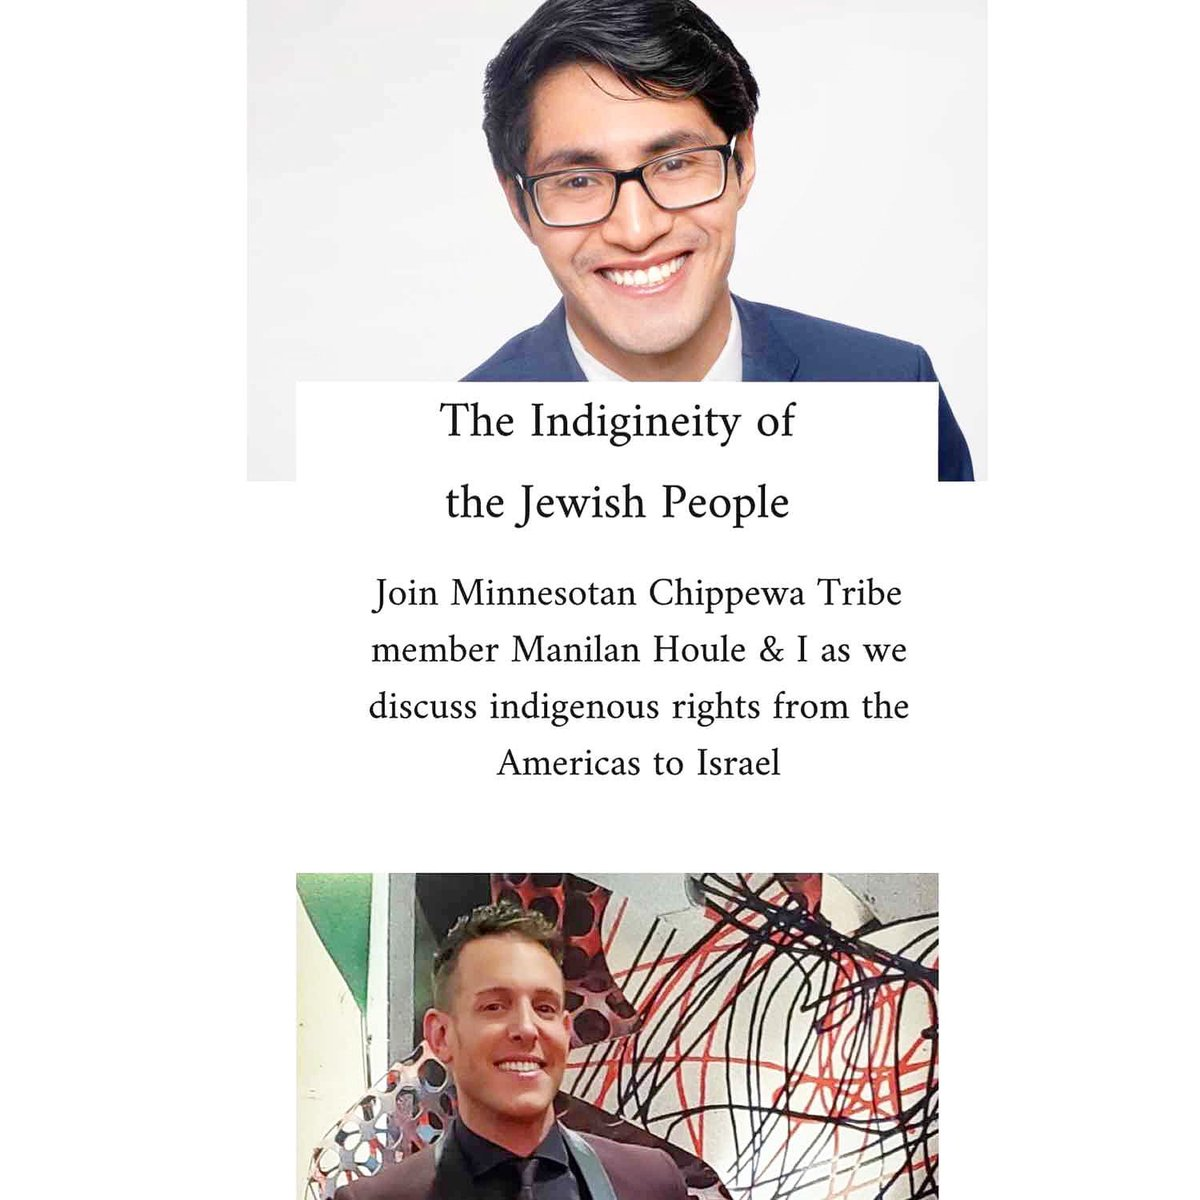 Join @ShaiDeLuca and I tomorrow at 10ET to discuss indigenous stories here in the Americas and in Israel, where Jews have maintained a connection and presence for thousands of years. How do we discuss history and embrace our indigineity when so many seek to erase it?